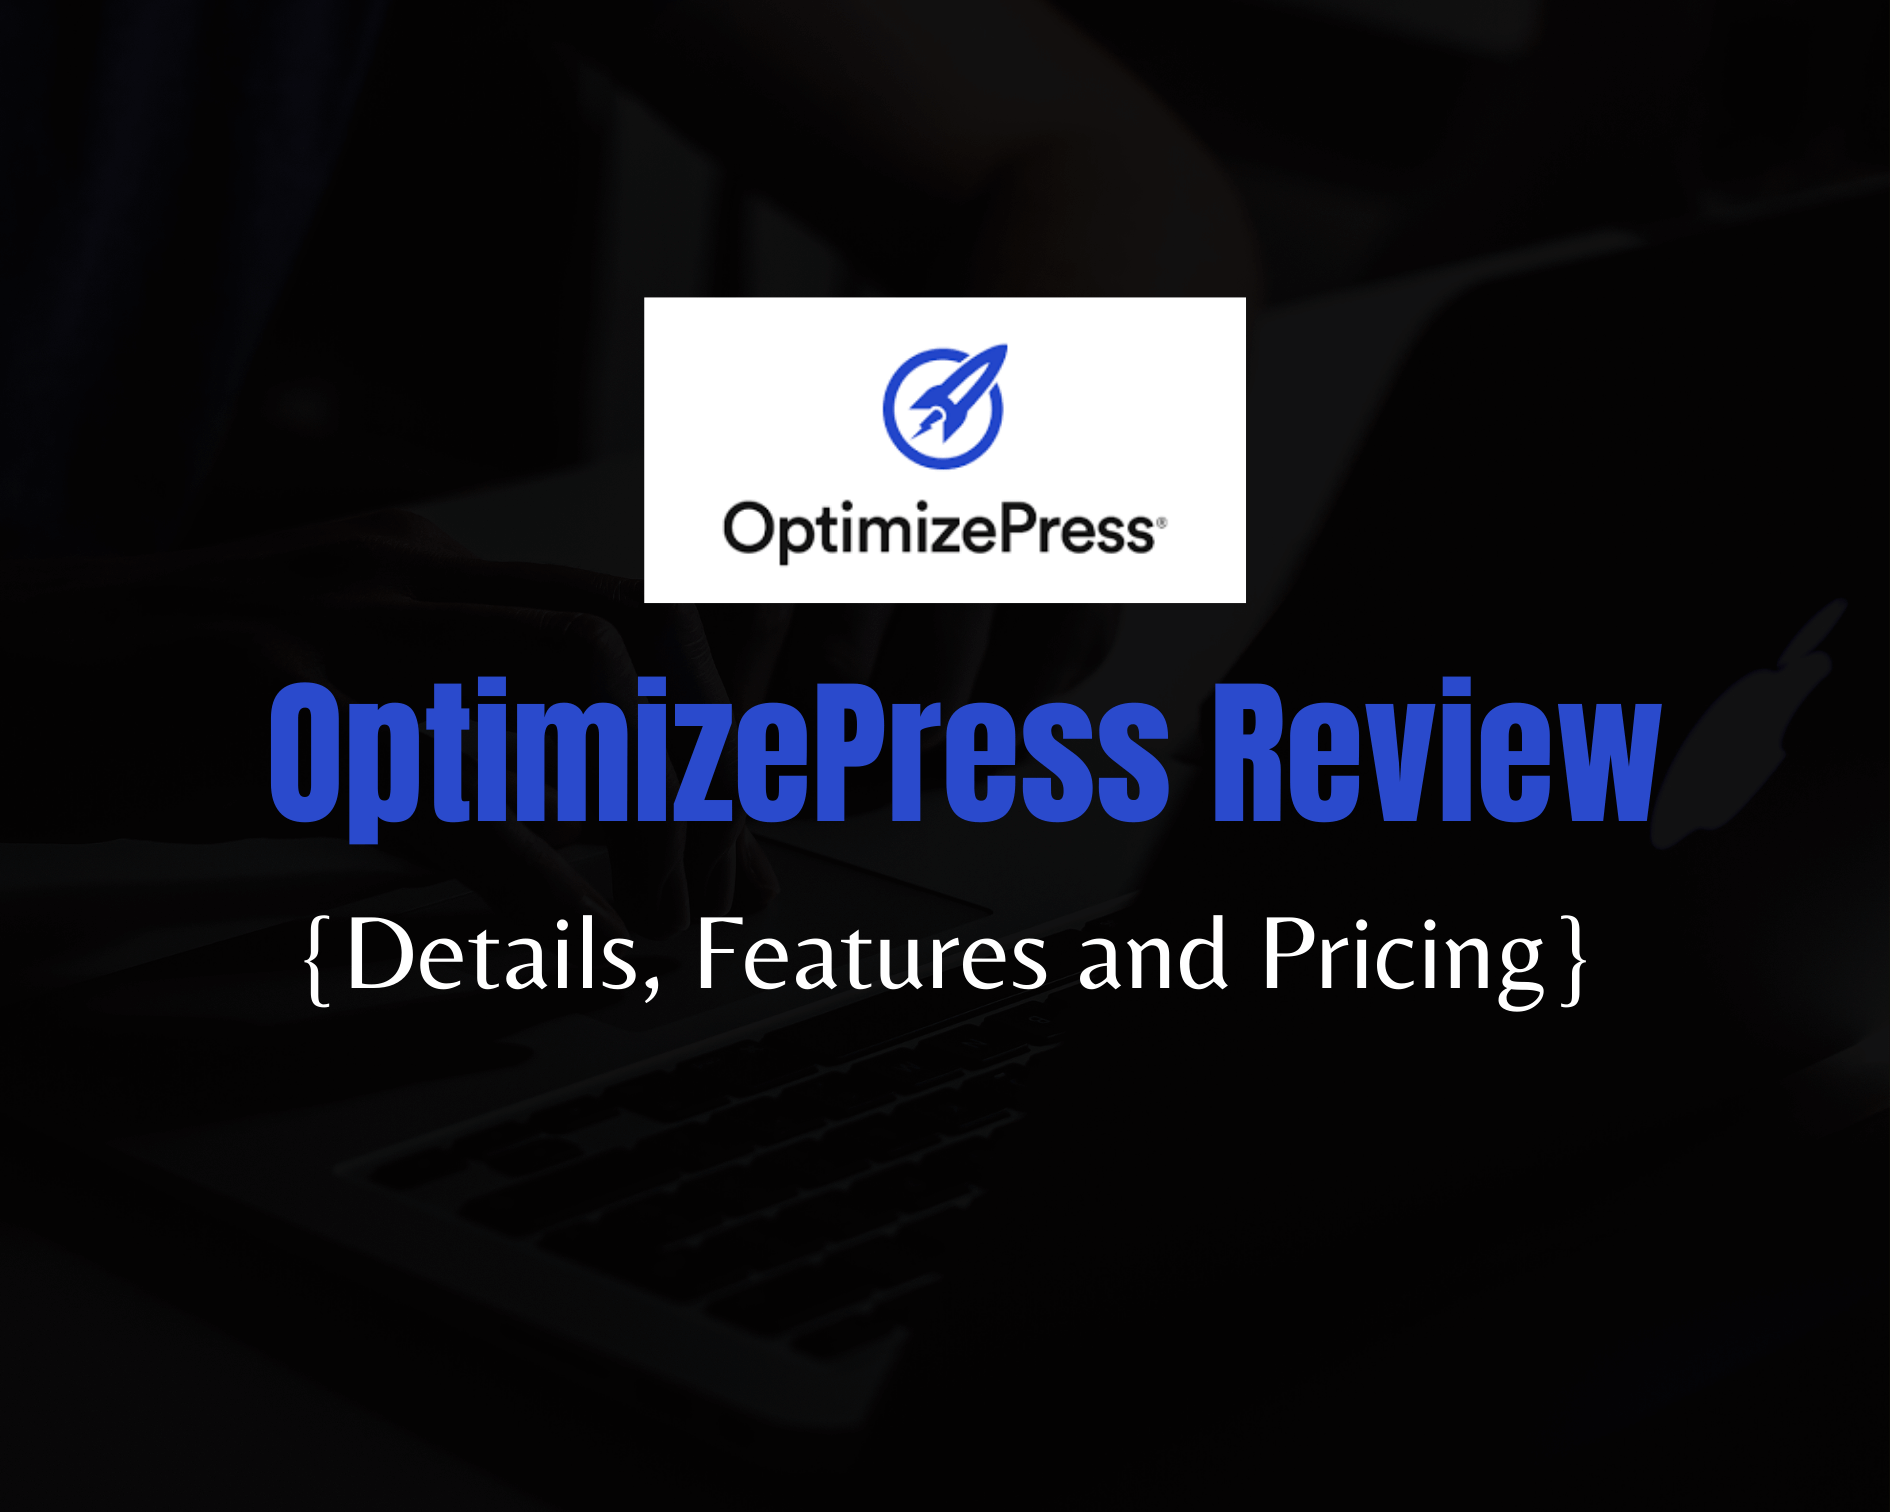 OptimizePress Review 2021: An Affordable Landing Page Builder